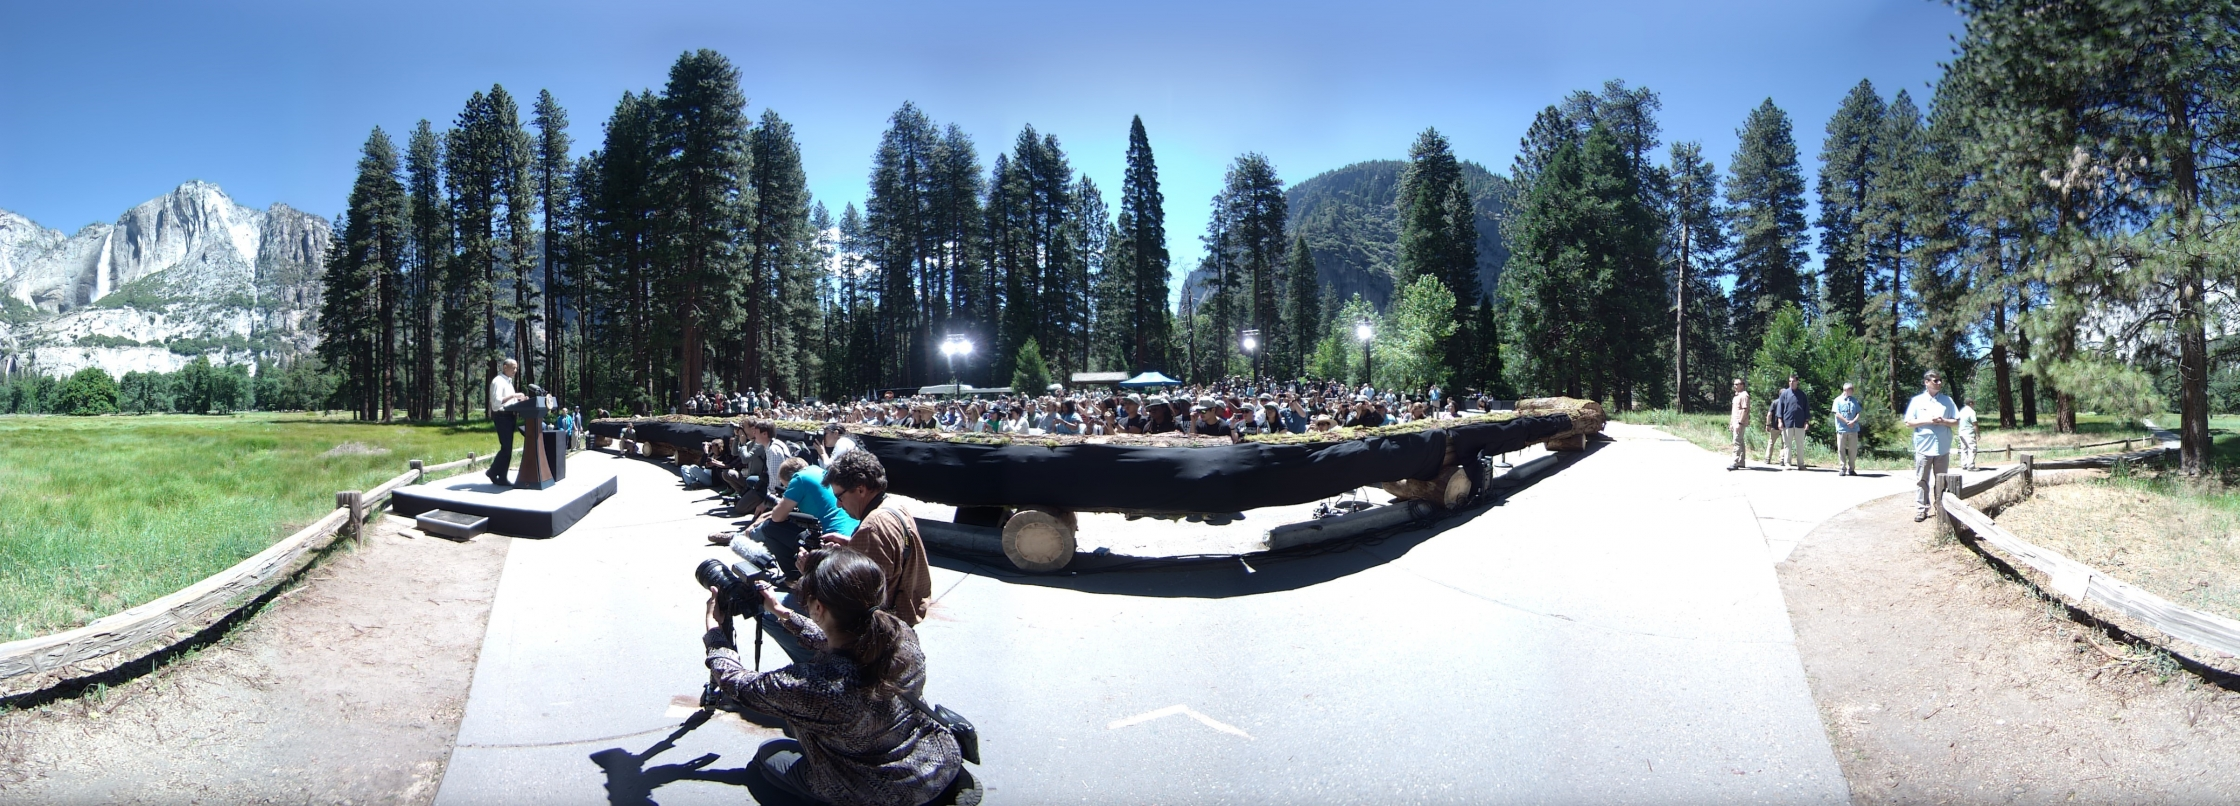 President Obama speaks in Yosemite